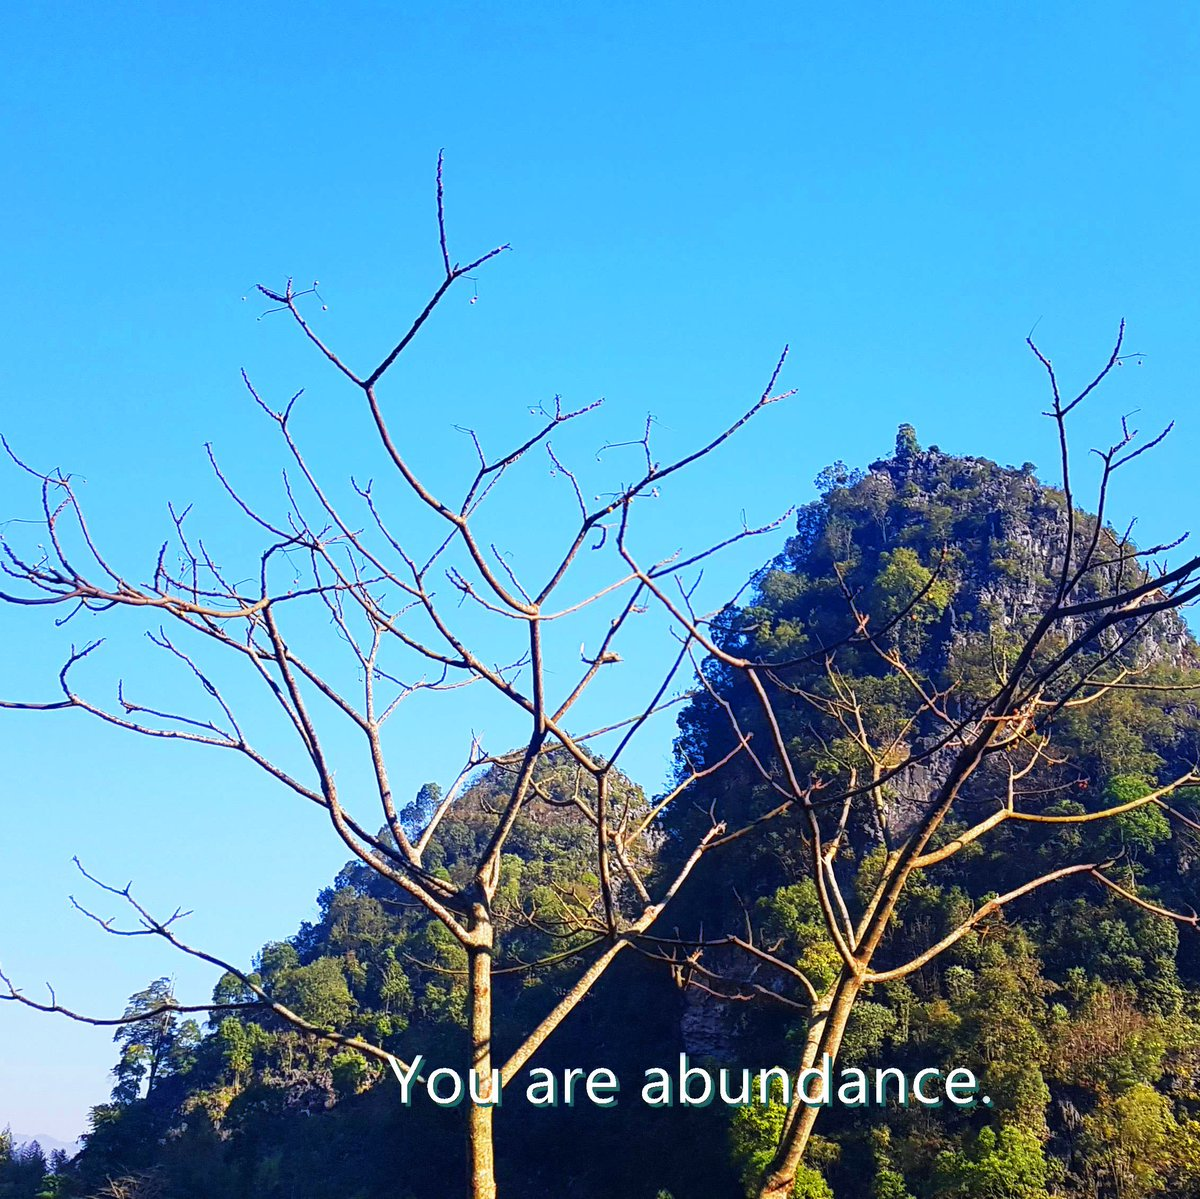 You are abundance.  🌺Follow for an affirmation a day🌺  #leaftree #leaftreeaffirmations #tree_perfection #raw_alltrees #total_trees #nature_seekers #wisdom #tree_pictures #landscapelovers #affirmation